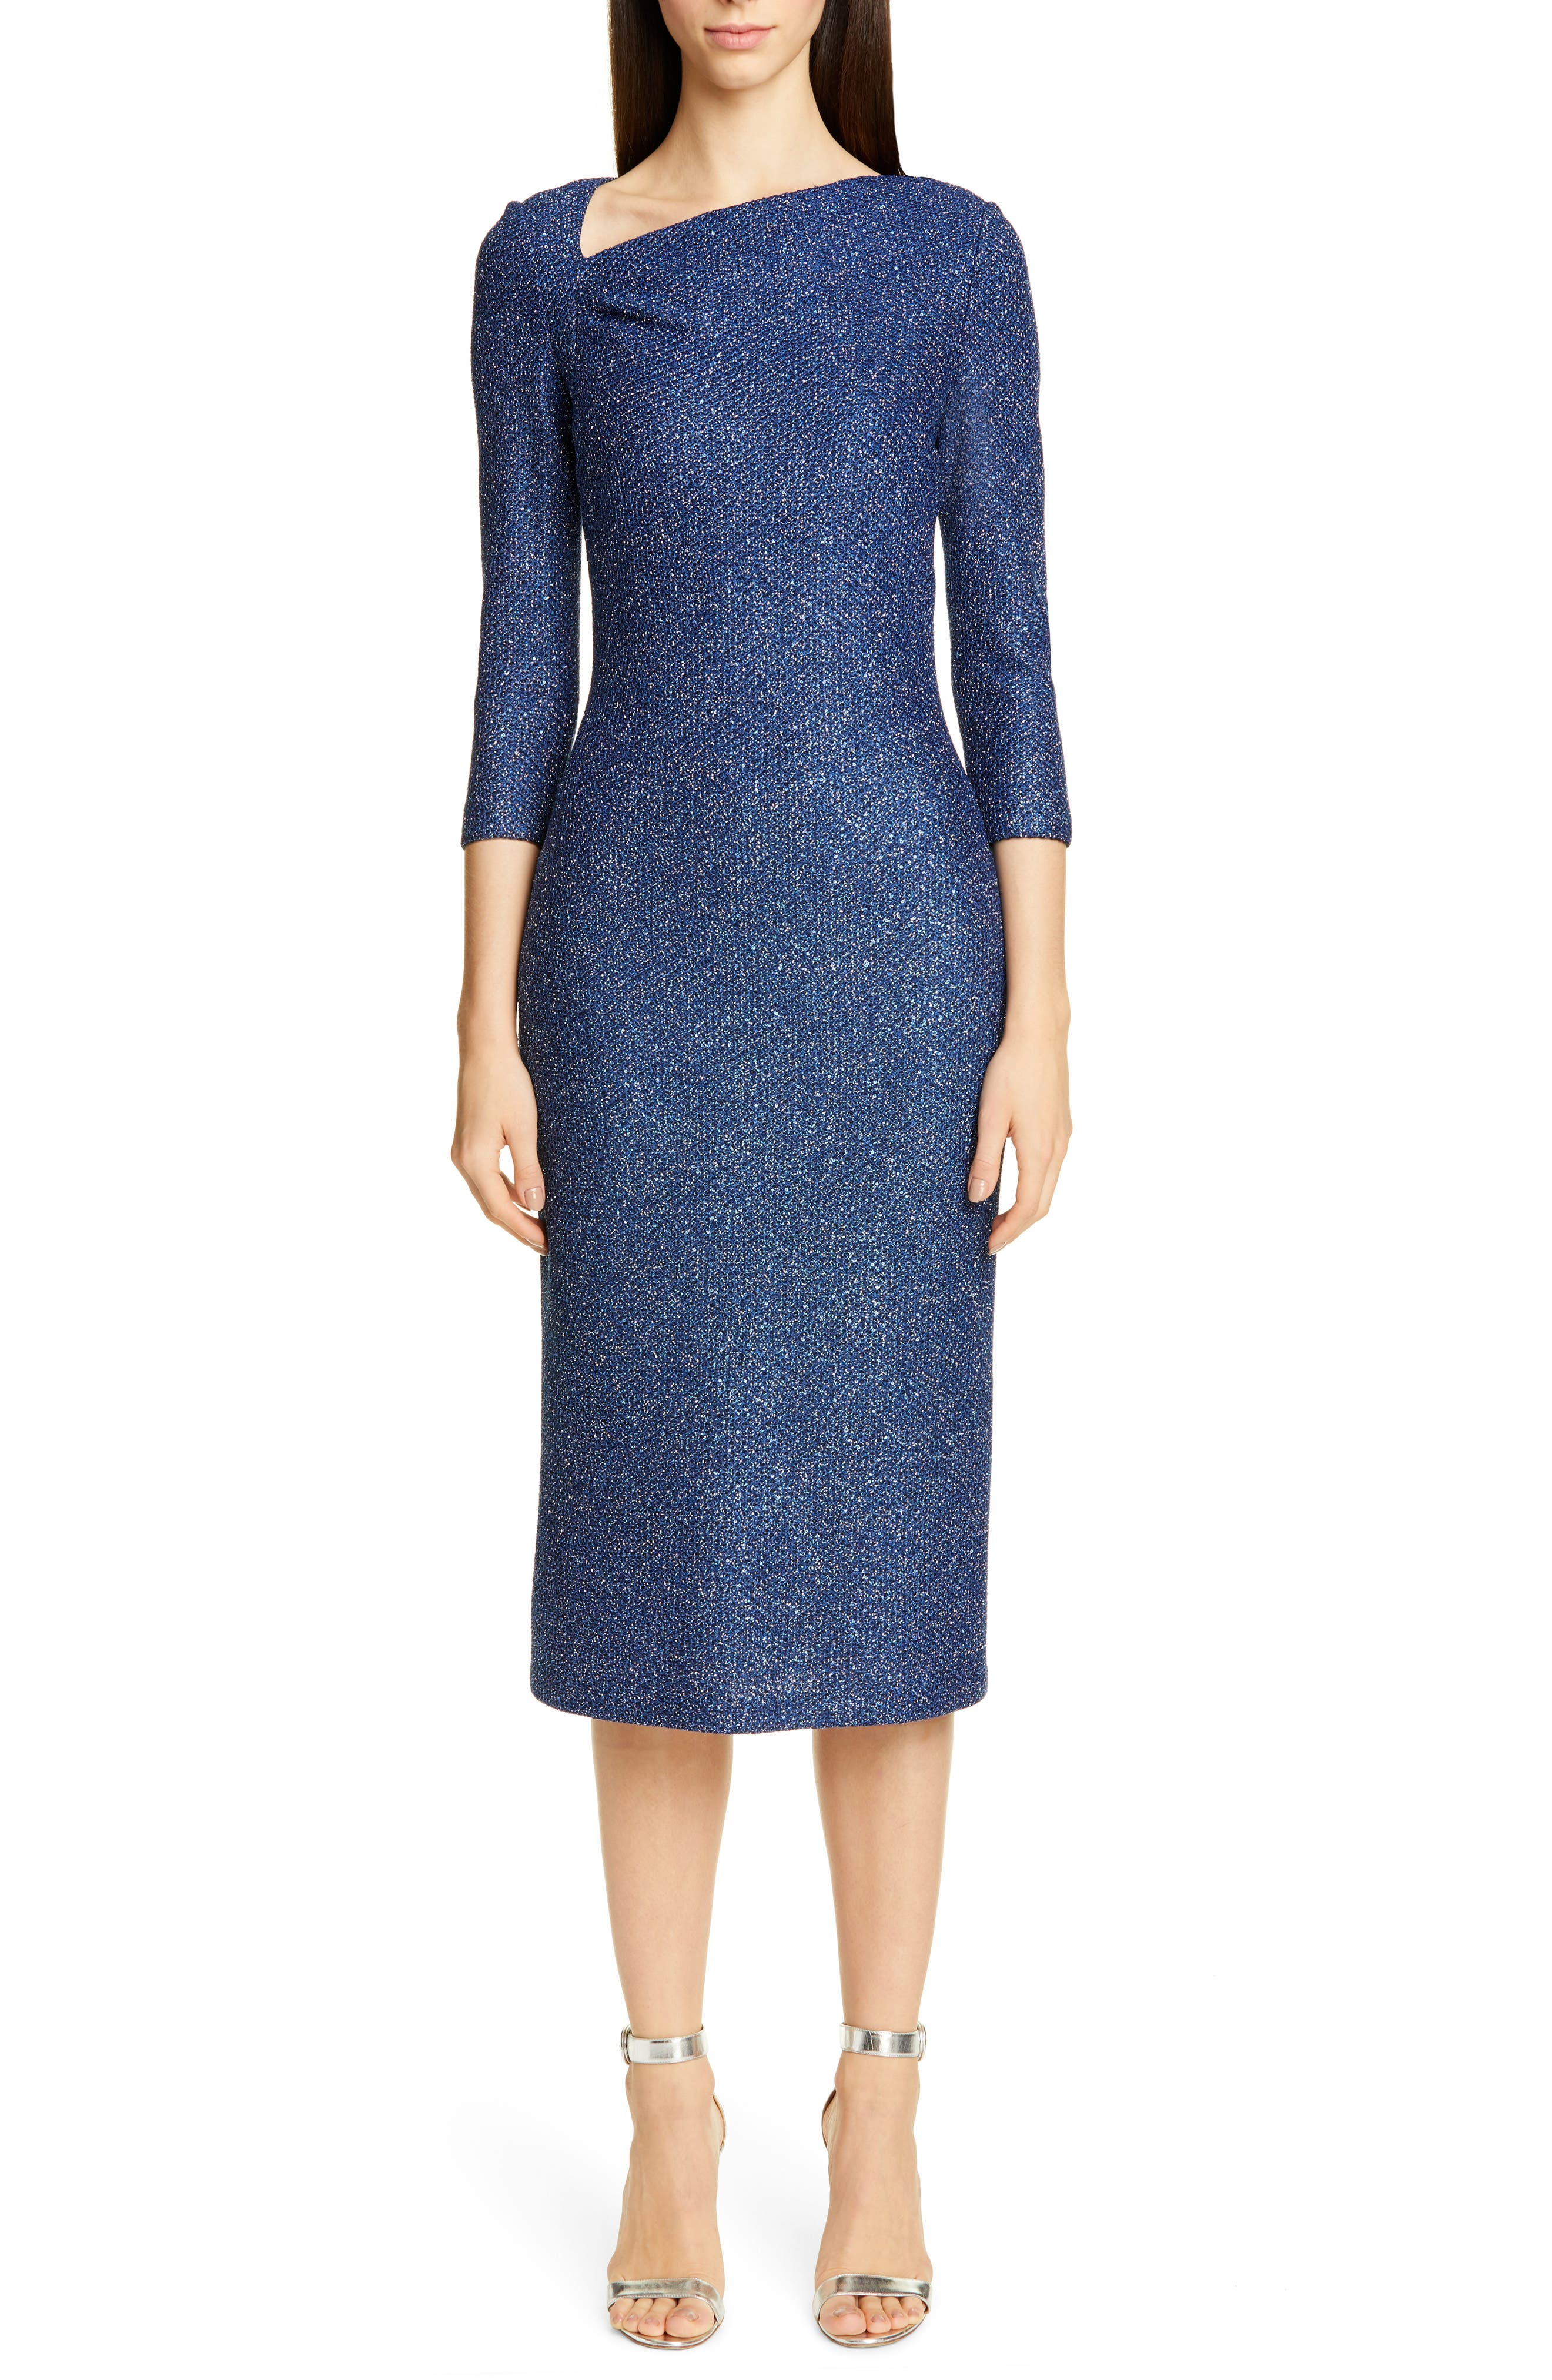 St. John Collection Luxe Sequin Tuck Knit Dress, Blue